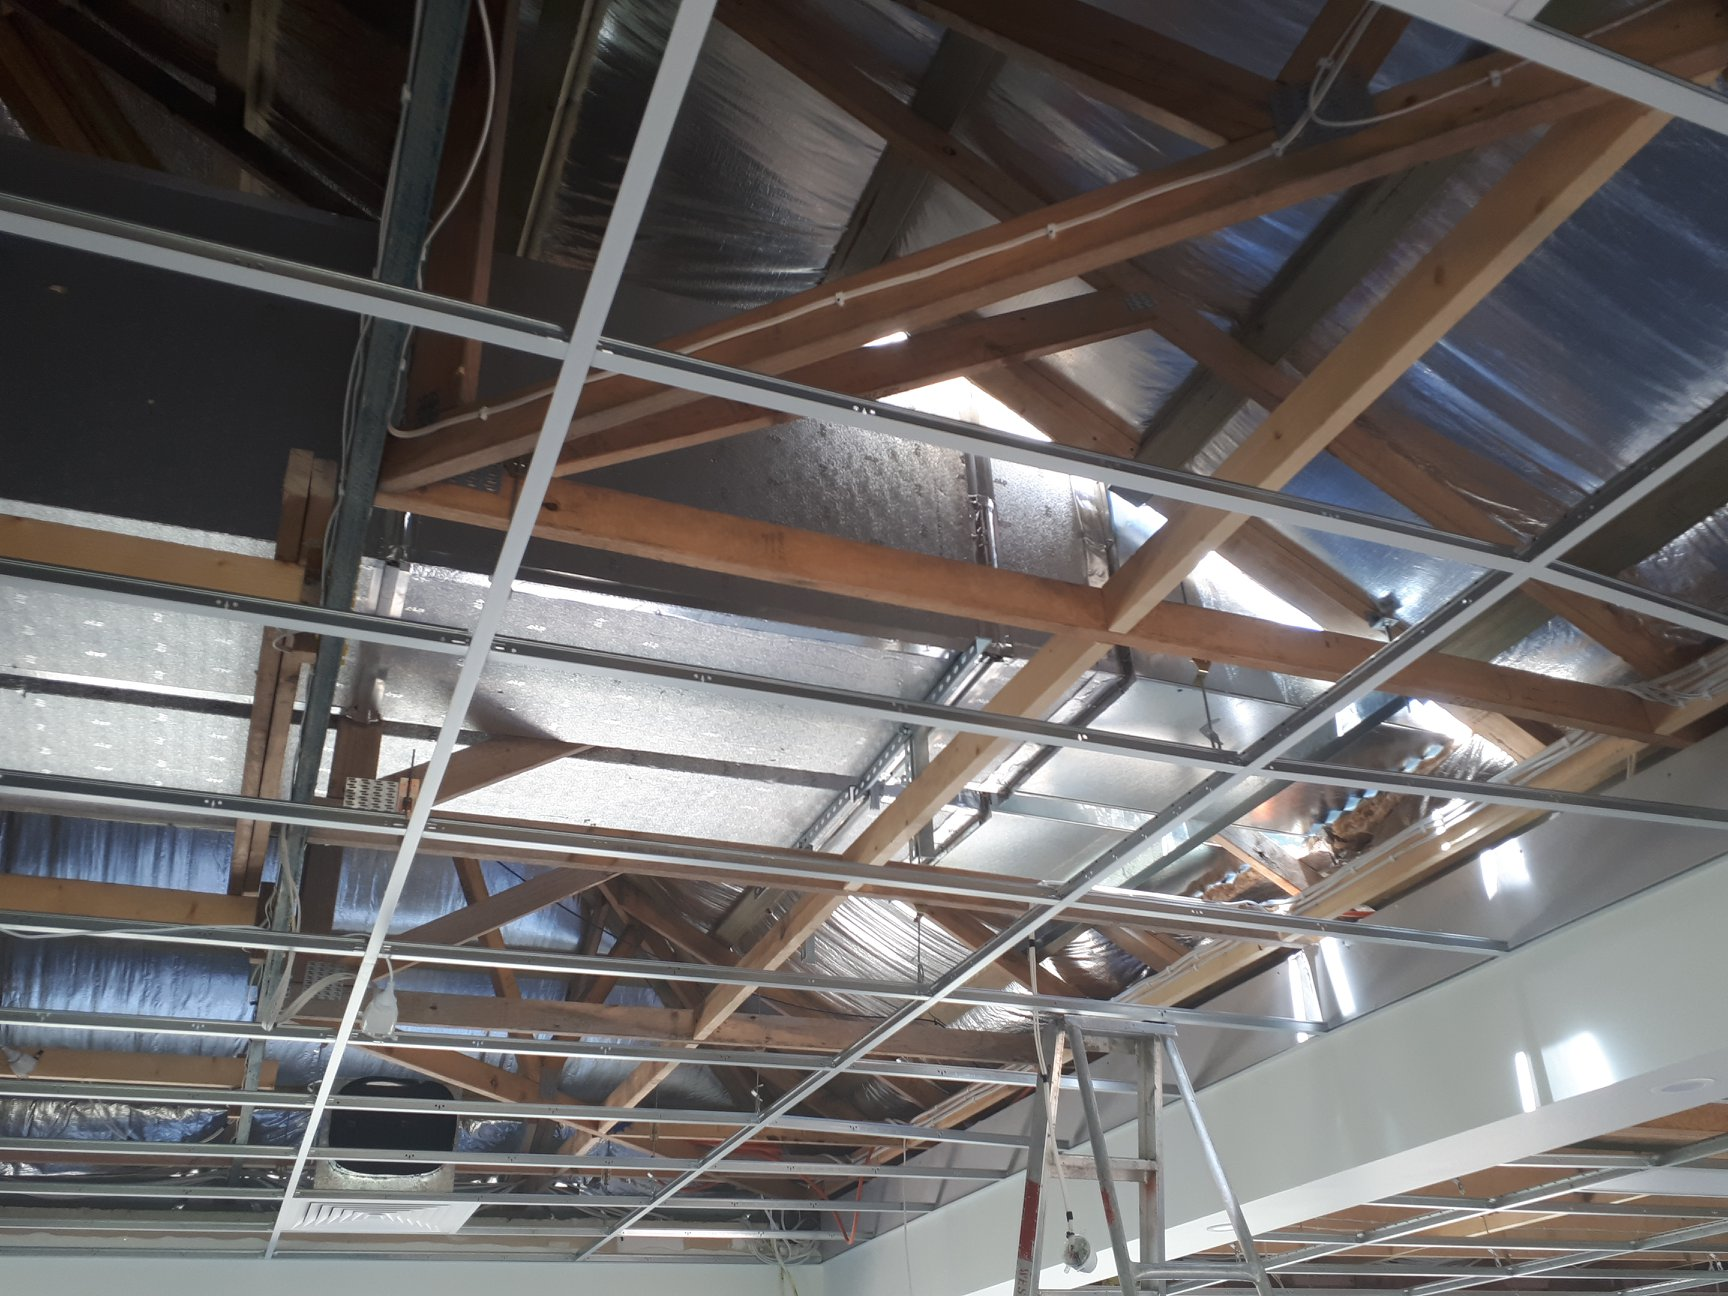 181218 Airconditioning ducting goes in